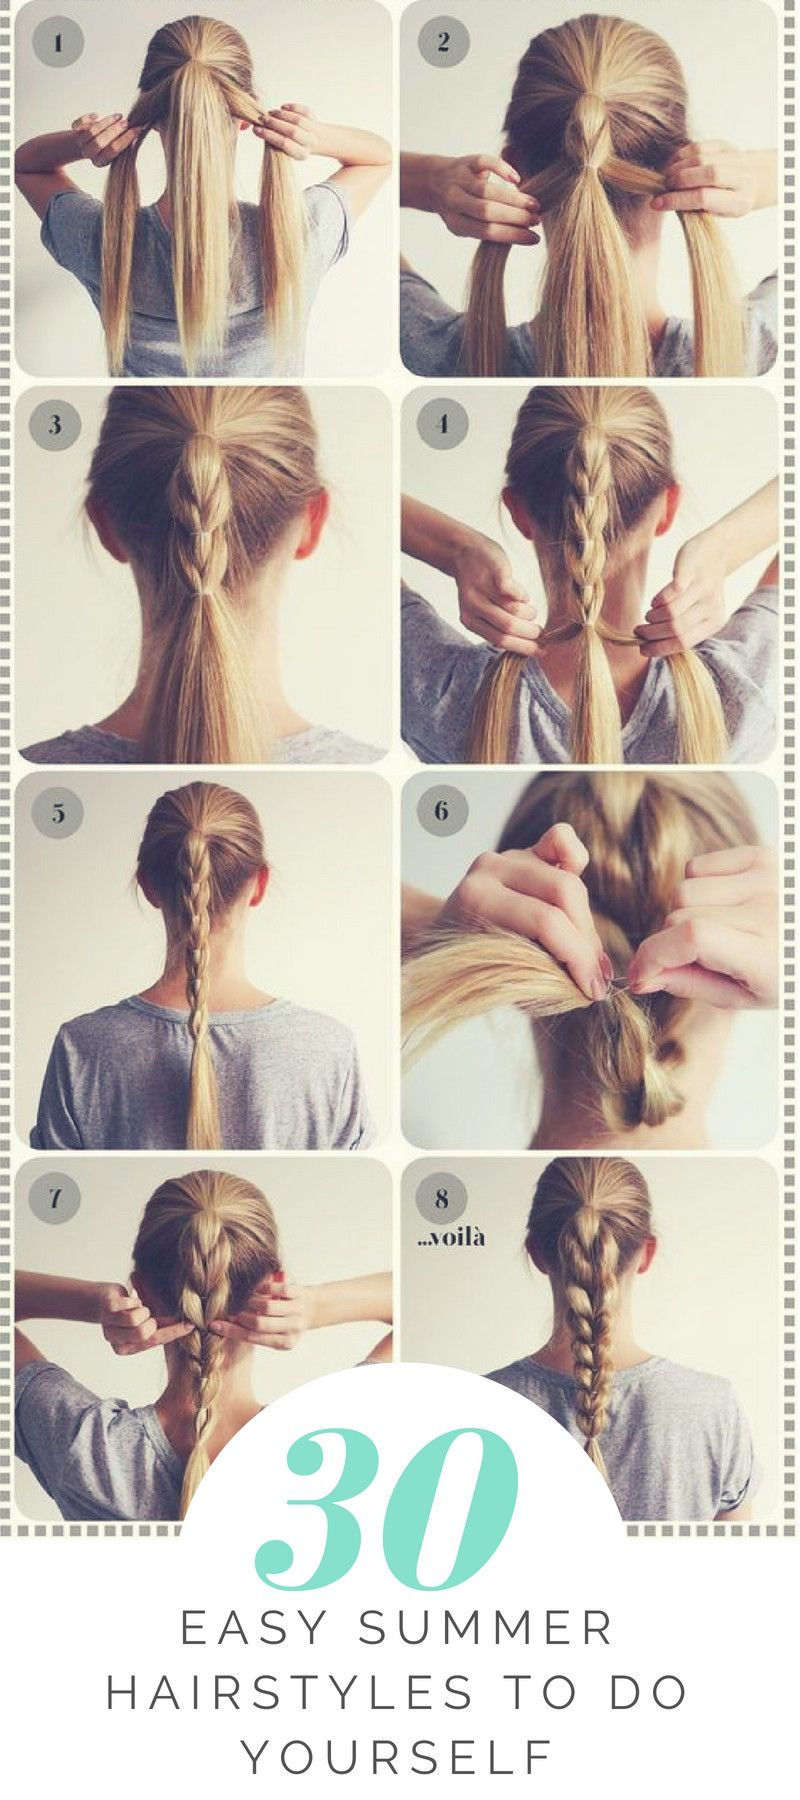 30 Easy Summer Hairstyles To Do Yourself Easy Summer Hairstyles Hair Styles Summer Hairstyles